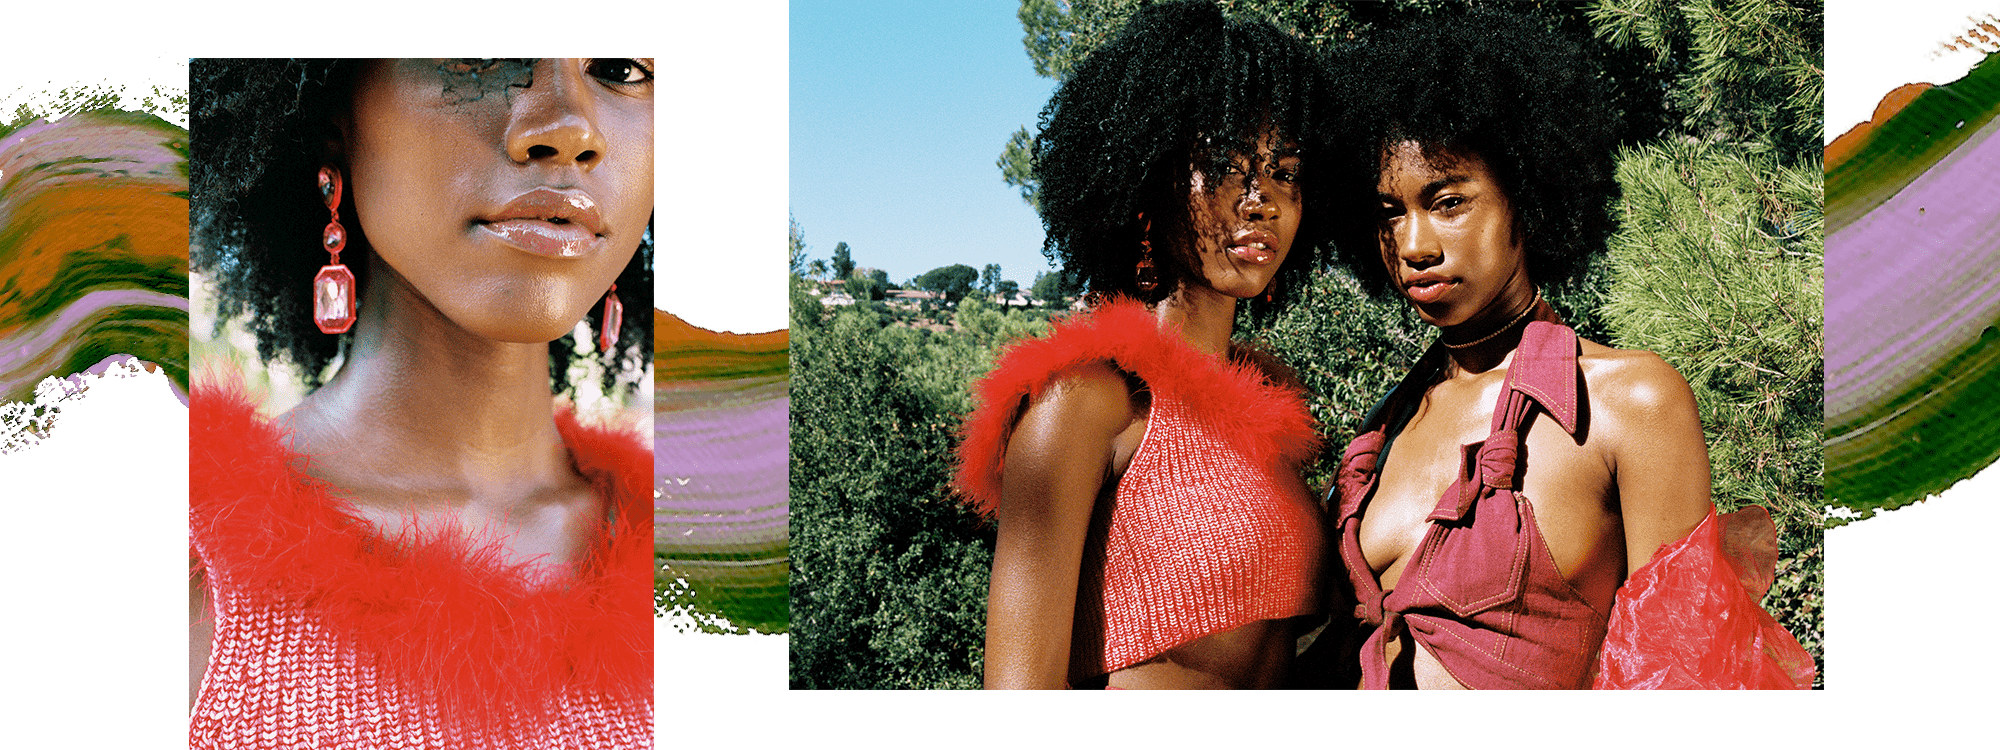 Model Alana January is wearing a pink crop top with a red feather trim. She has pink crystal earrings and her hair is loose and curly. In the second image, she appears with her sister Amaya January, who is wearing a rose-colored tied crop top and has brown curly hair. There is a swatch of purple and green paint behind them.